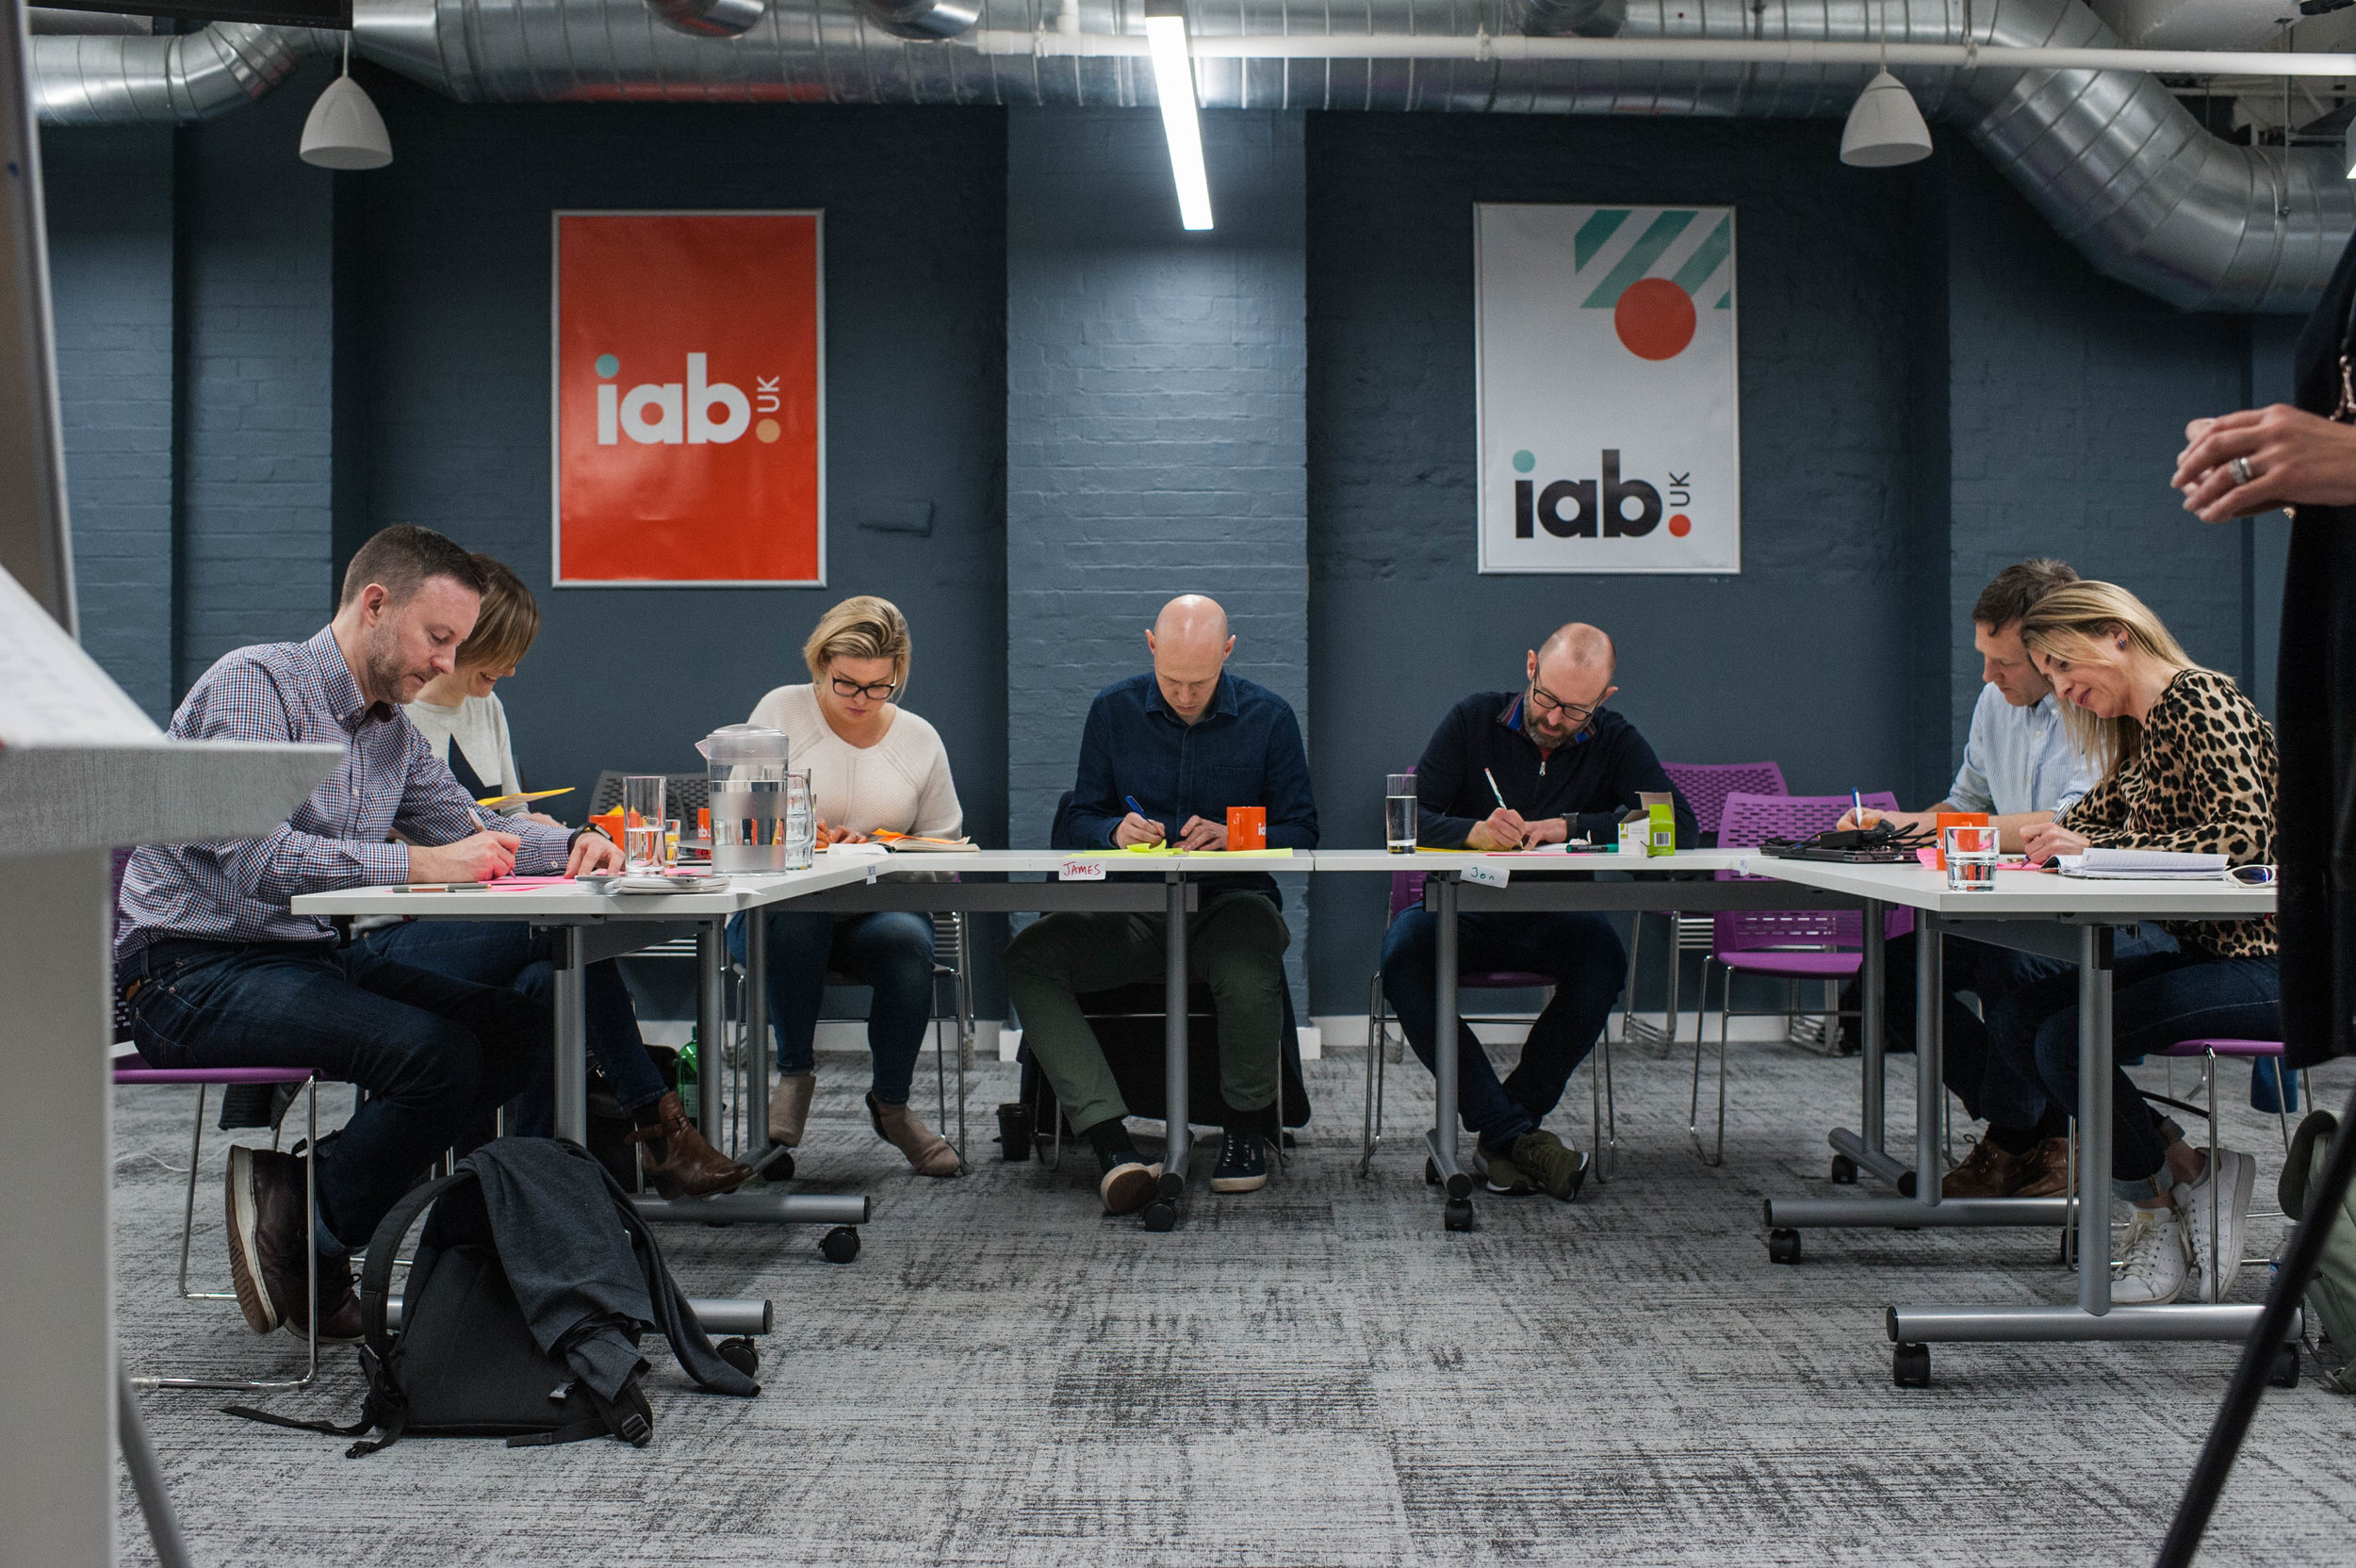 IAB Uk_Incidental Shots_SM (172 of 312).jpg